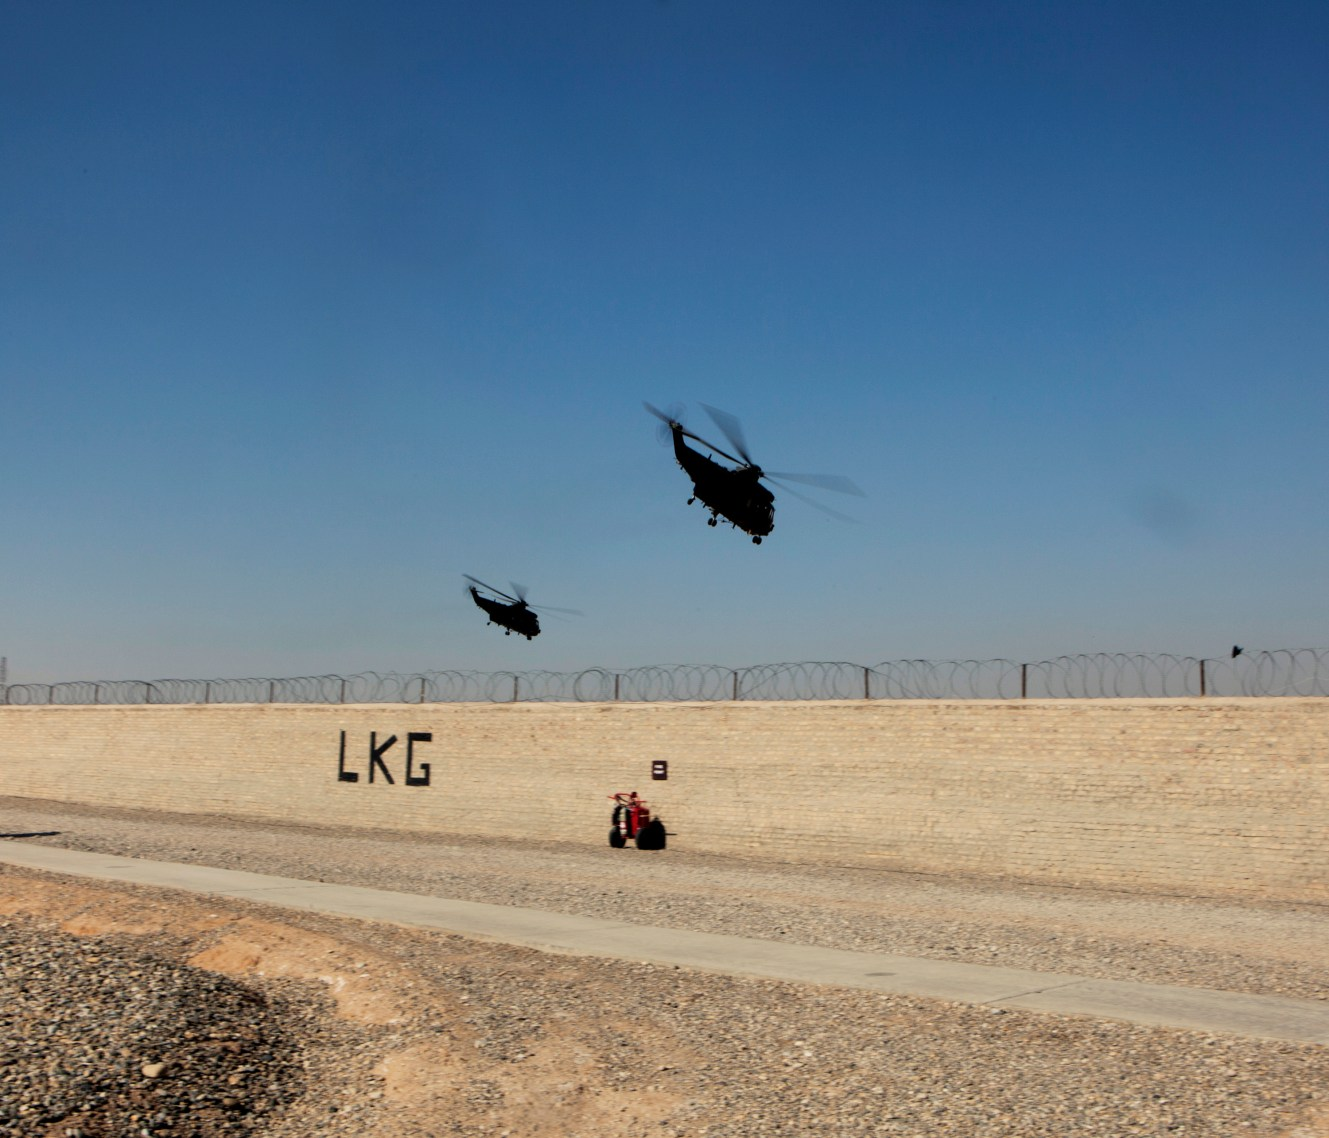 Two military helicopters fly out of the British Army base in Lashkar Gar heading to Camp Bastion. In June 2011, President Obama announced his plan to begin the withdrawal of US troops from Afghanistan, but there is currently no end date for the war in the troubled country. Helmand is the largest province in Afghanistan, and the heart of the war against terror. Commanders on the ground have described the situation as the most brutal conflict the British Army has been involved in since the Korean War. Much of the fighting between NATO and Taliban forces is taking place in this province and Helmand is a true Taliban stronghold. The Helmand River flows through the mainly desert region. With these images I am trying to show a softer side to this troubled area of Afghanistan.